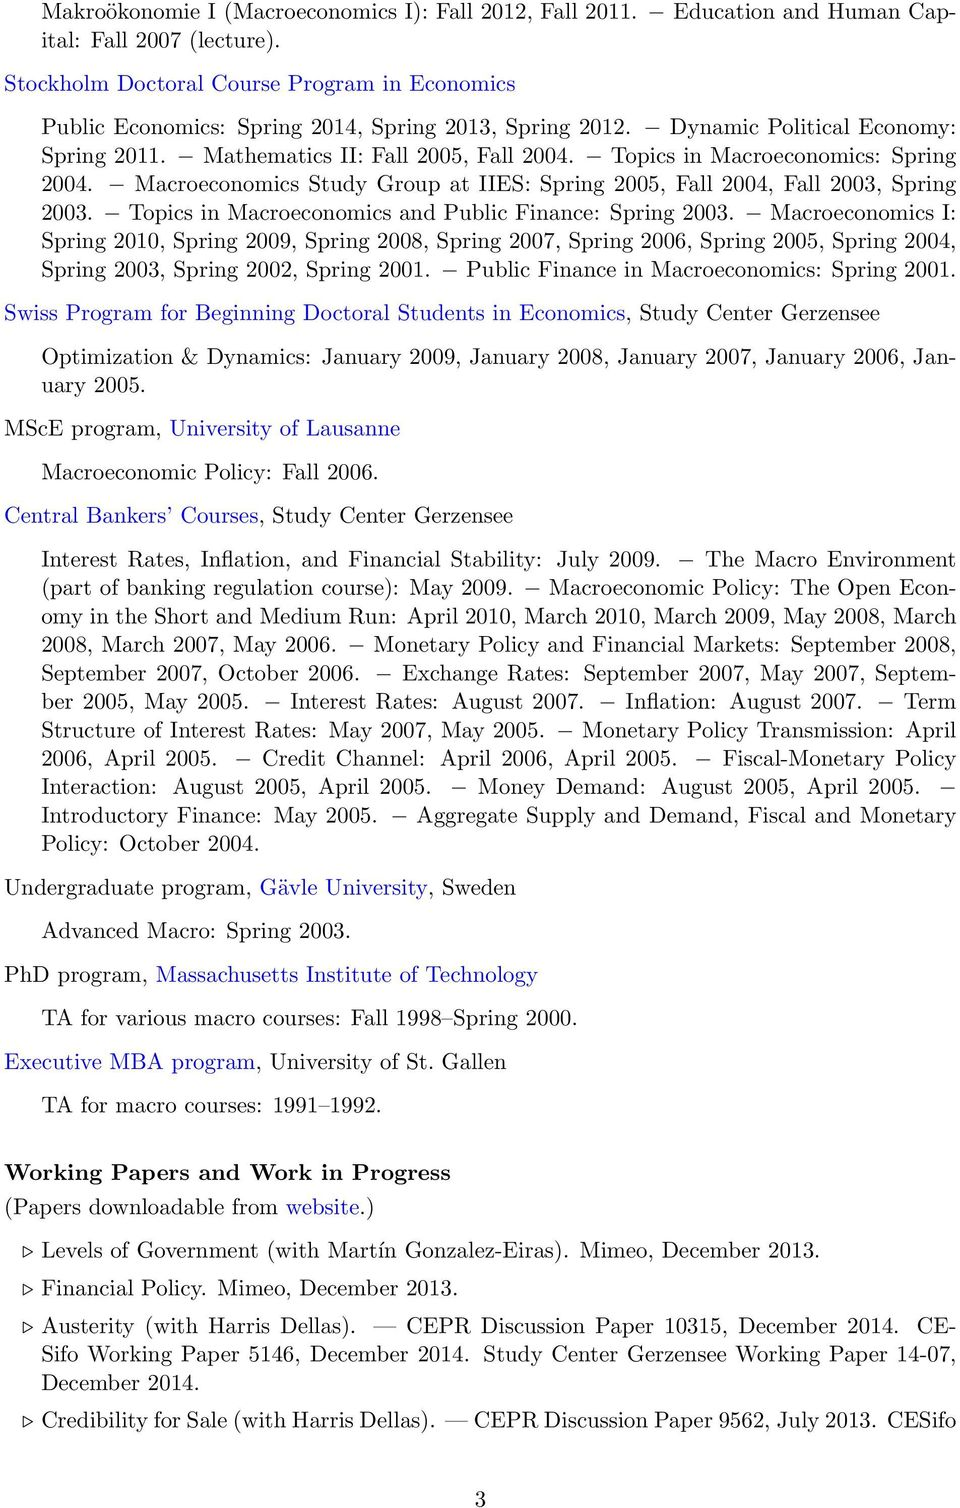 Topics in Macroeconomics: Spring 2004. Macroeconomics Study Group at IIES: Spring 2005, Fall 2004, Fall 2003, Spring 2003. Topics in Macroeconomics and Public Finance: Spring 2003.